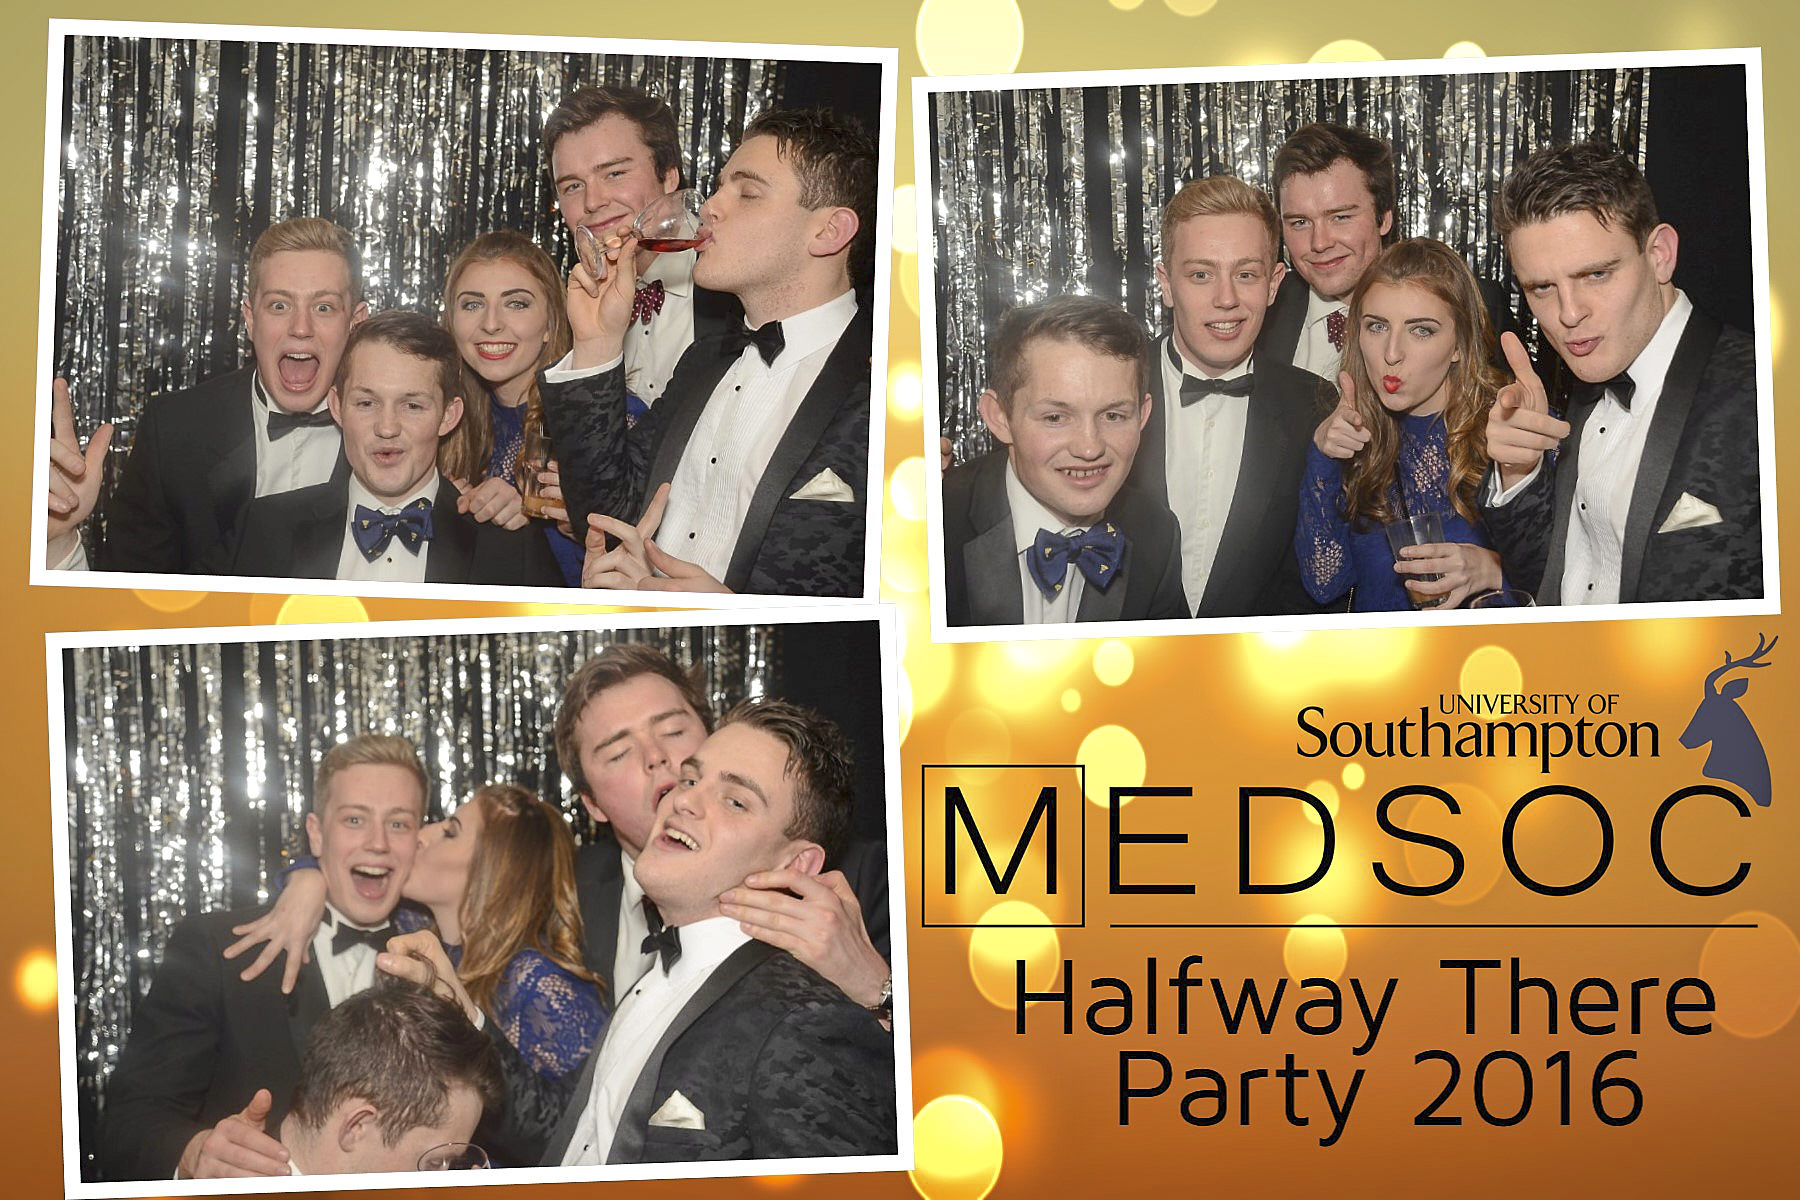 MedSoc Halfway There Party 2016 DS002750.jpg